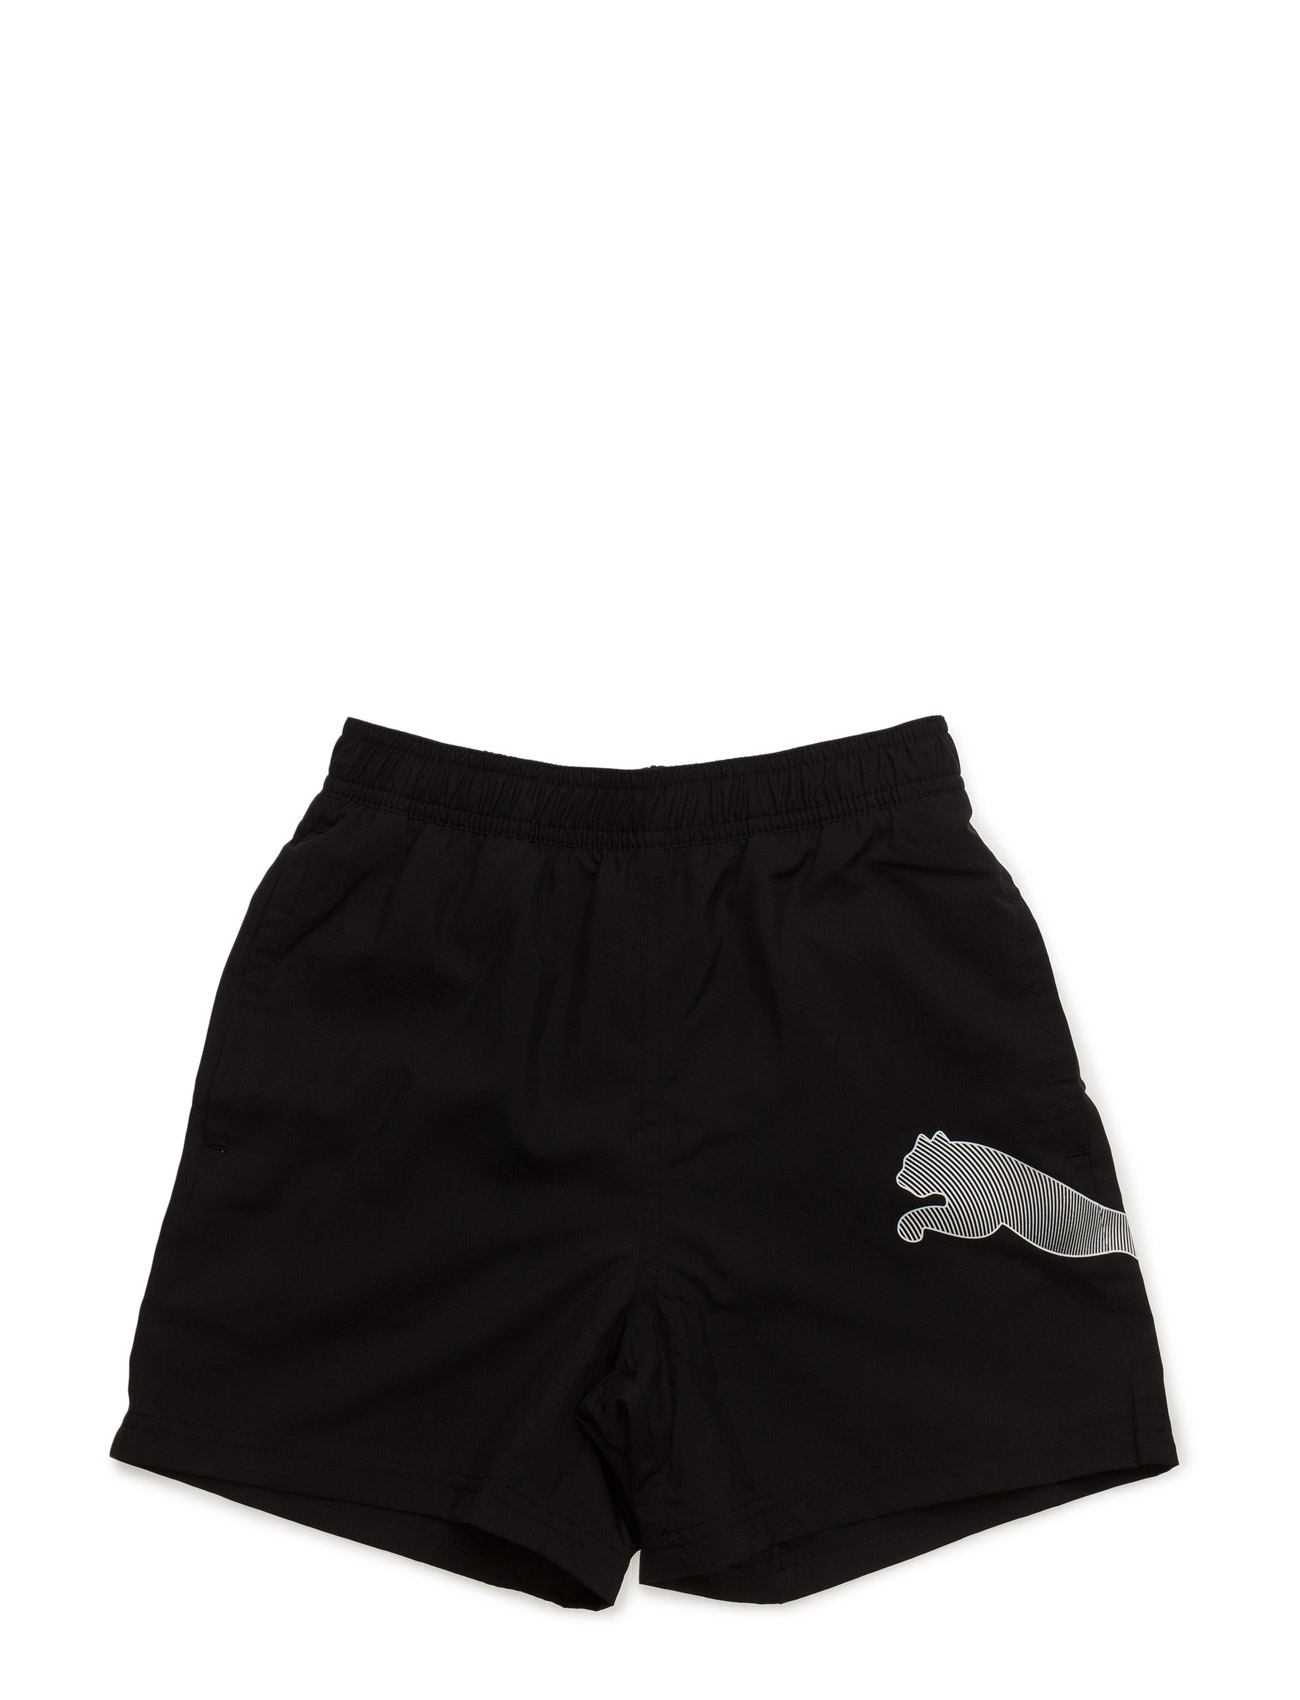 Active Big Cat Beach Shorts M Puma Badebukser til Børn i Sort